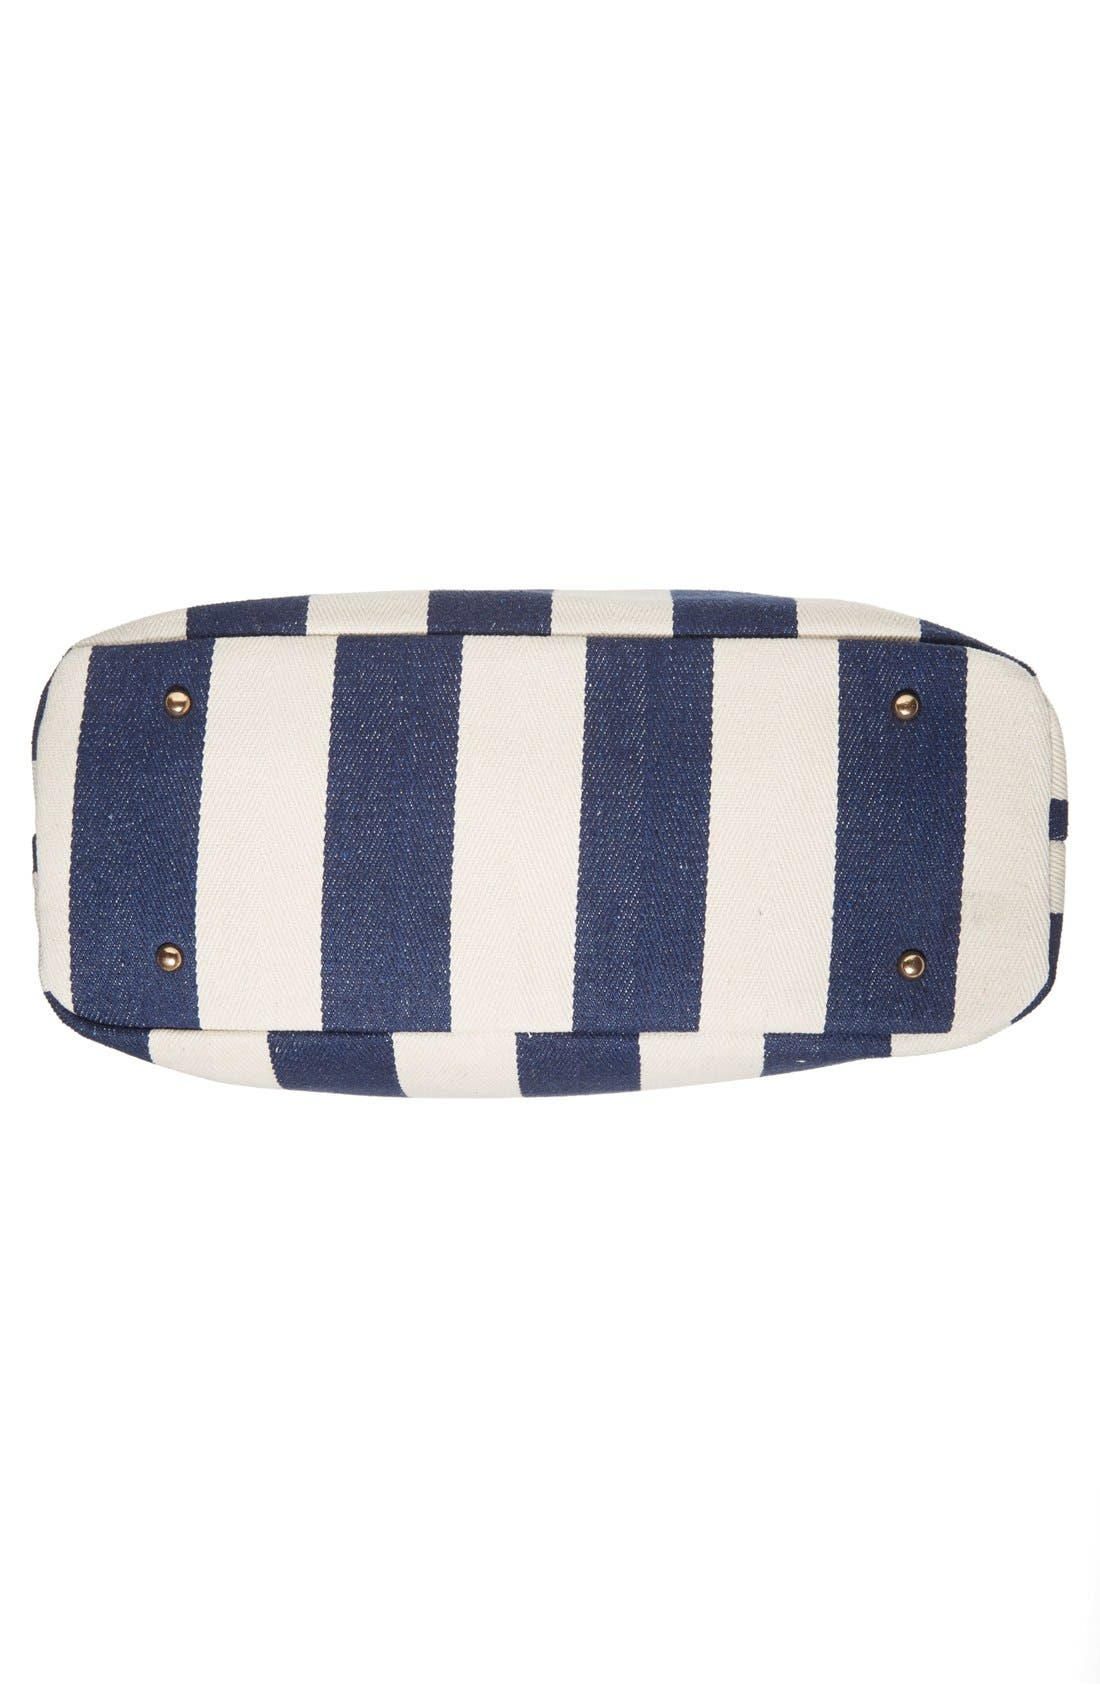 SOLE SOCIETY,                             'Oversize Millie' Stripe Print Tote,                             Alternate thumbnail 9, color,                             NAVY CREAM